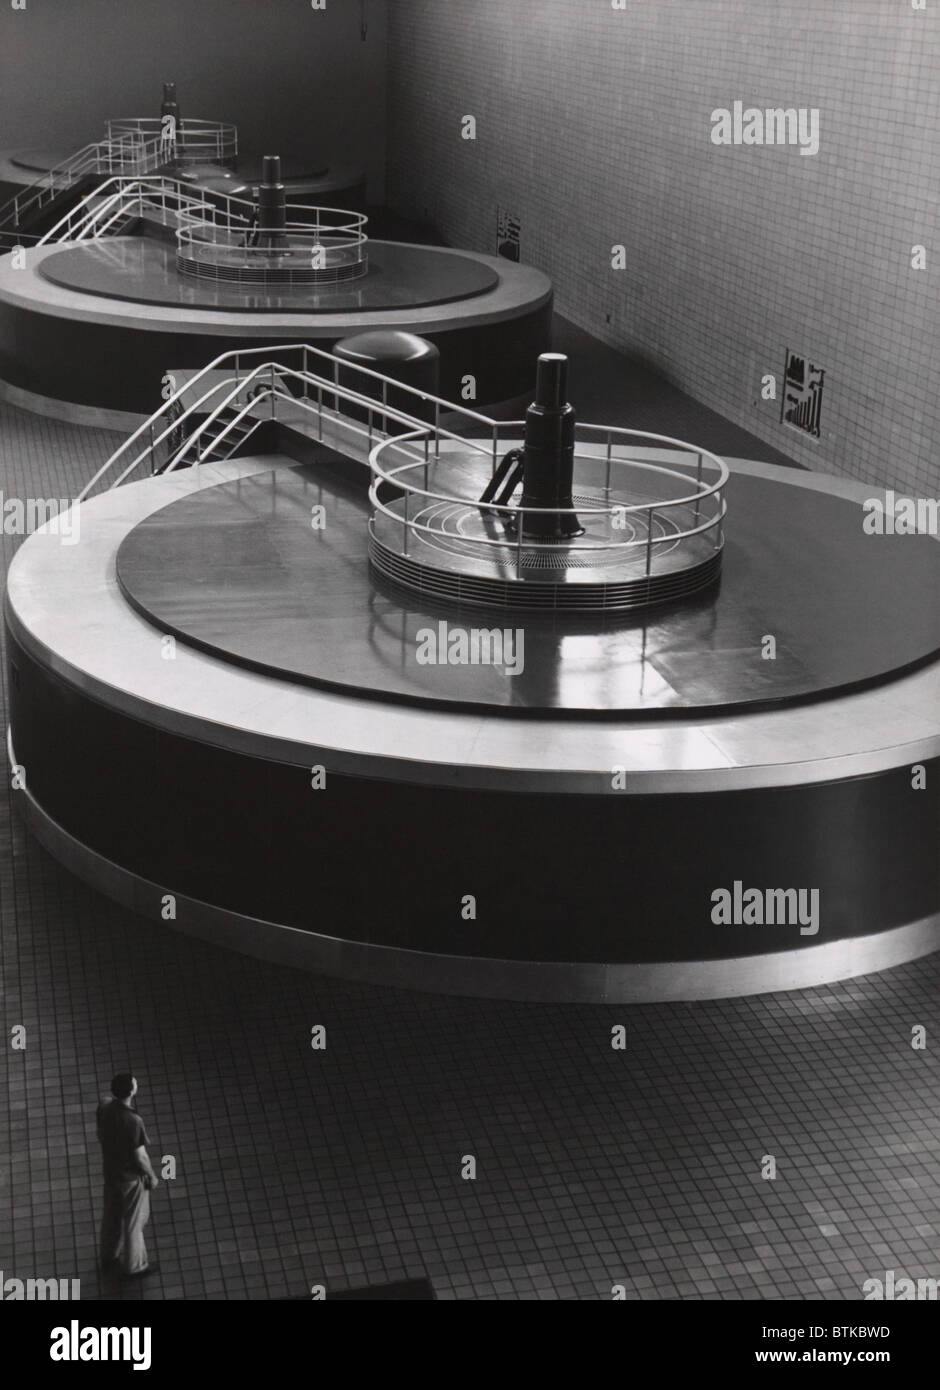 Chickamauga Dam Turbine Generators provided electricity to the rural areas of the Tennessee River Valley. It was - Stock Image